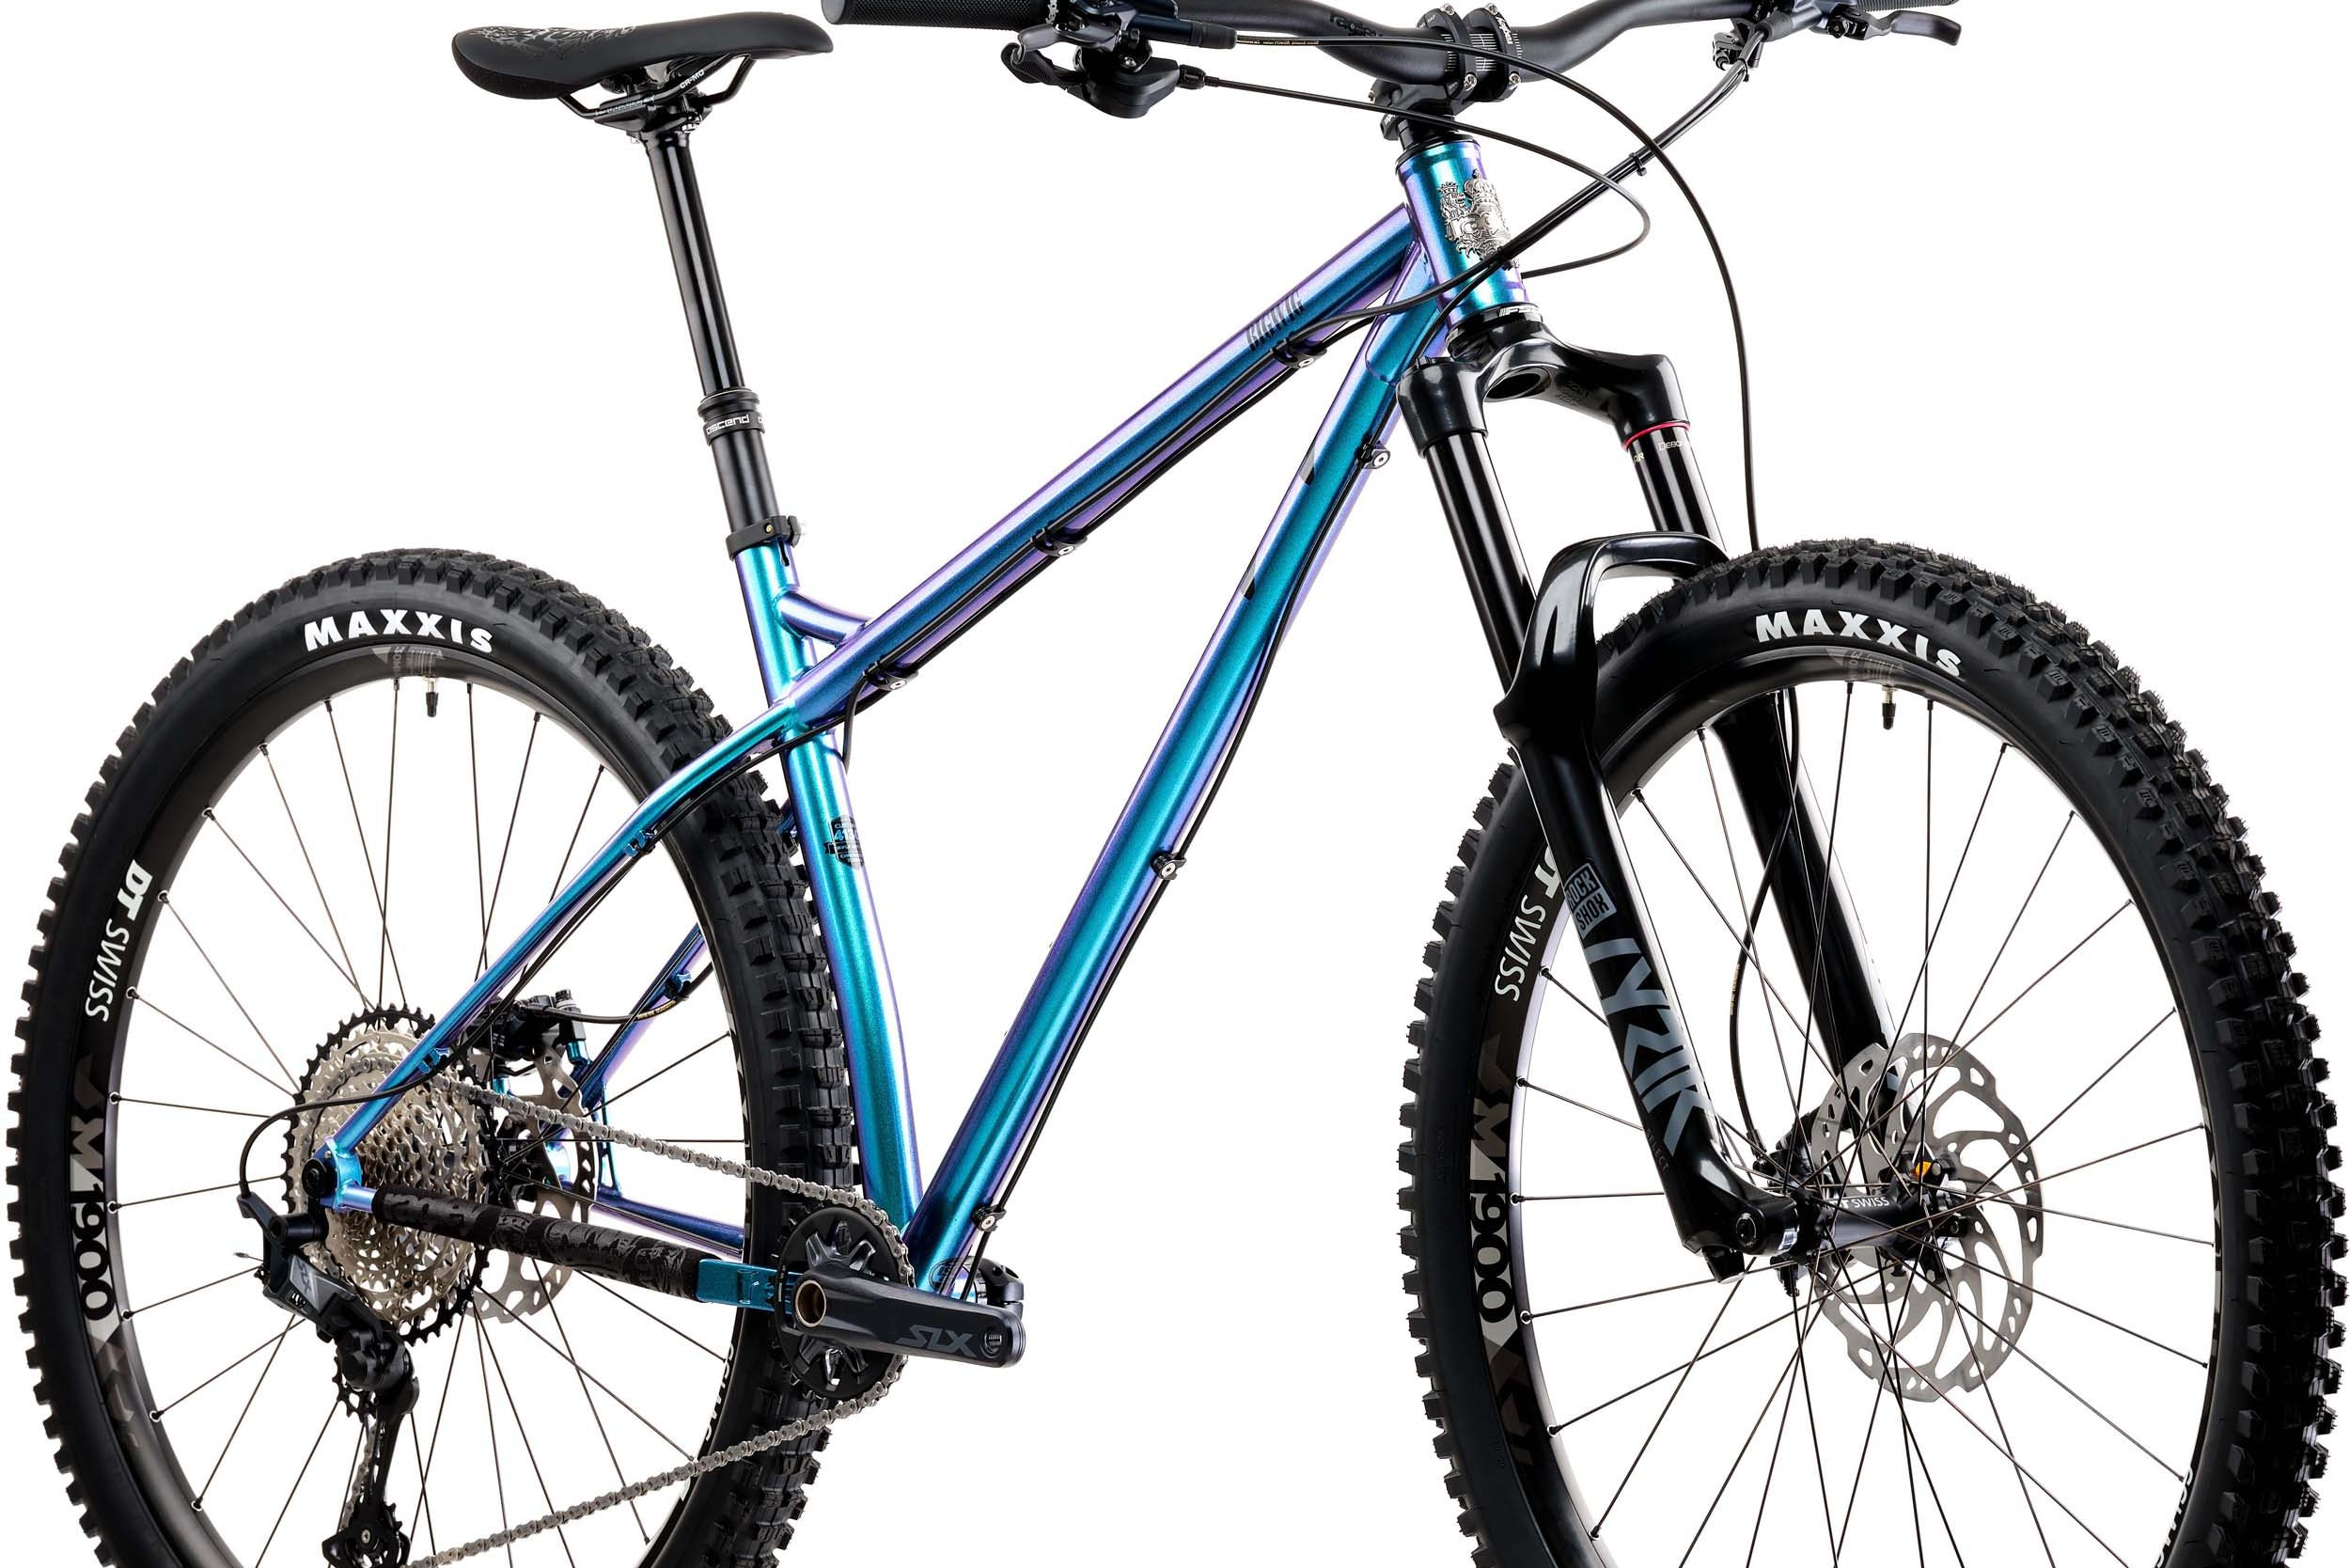 Quick overview of 2020 Ragley hardtails